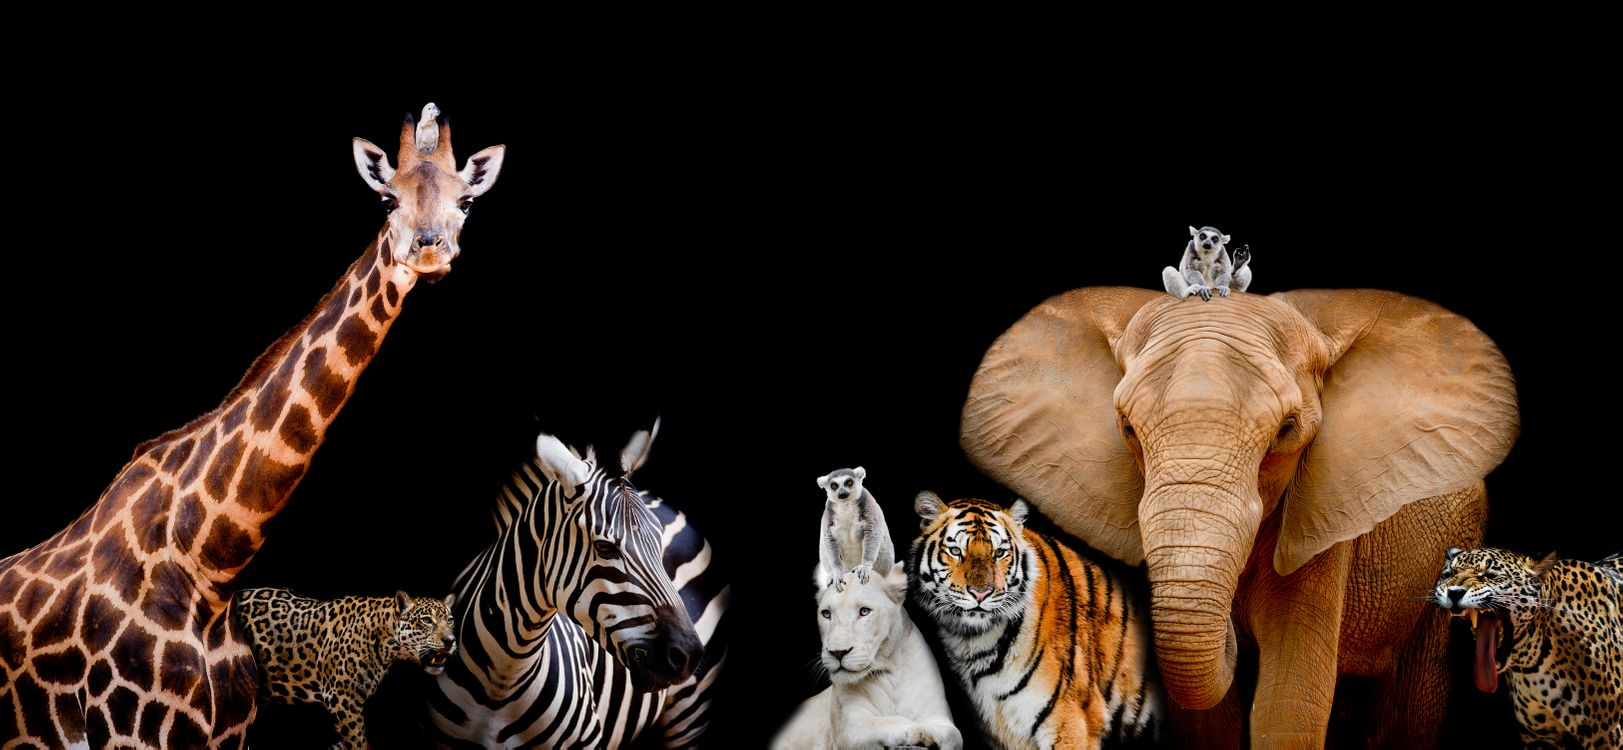 Free photo A group of animals together on a black background with text area, Animals range from an Elephant, Zebra, White Lion, Jaguar, Monkey, Giraffe and Tiger - to desktop